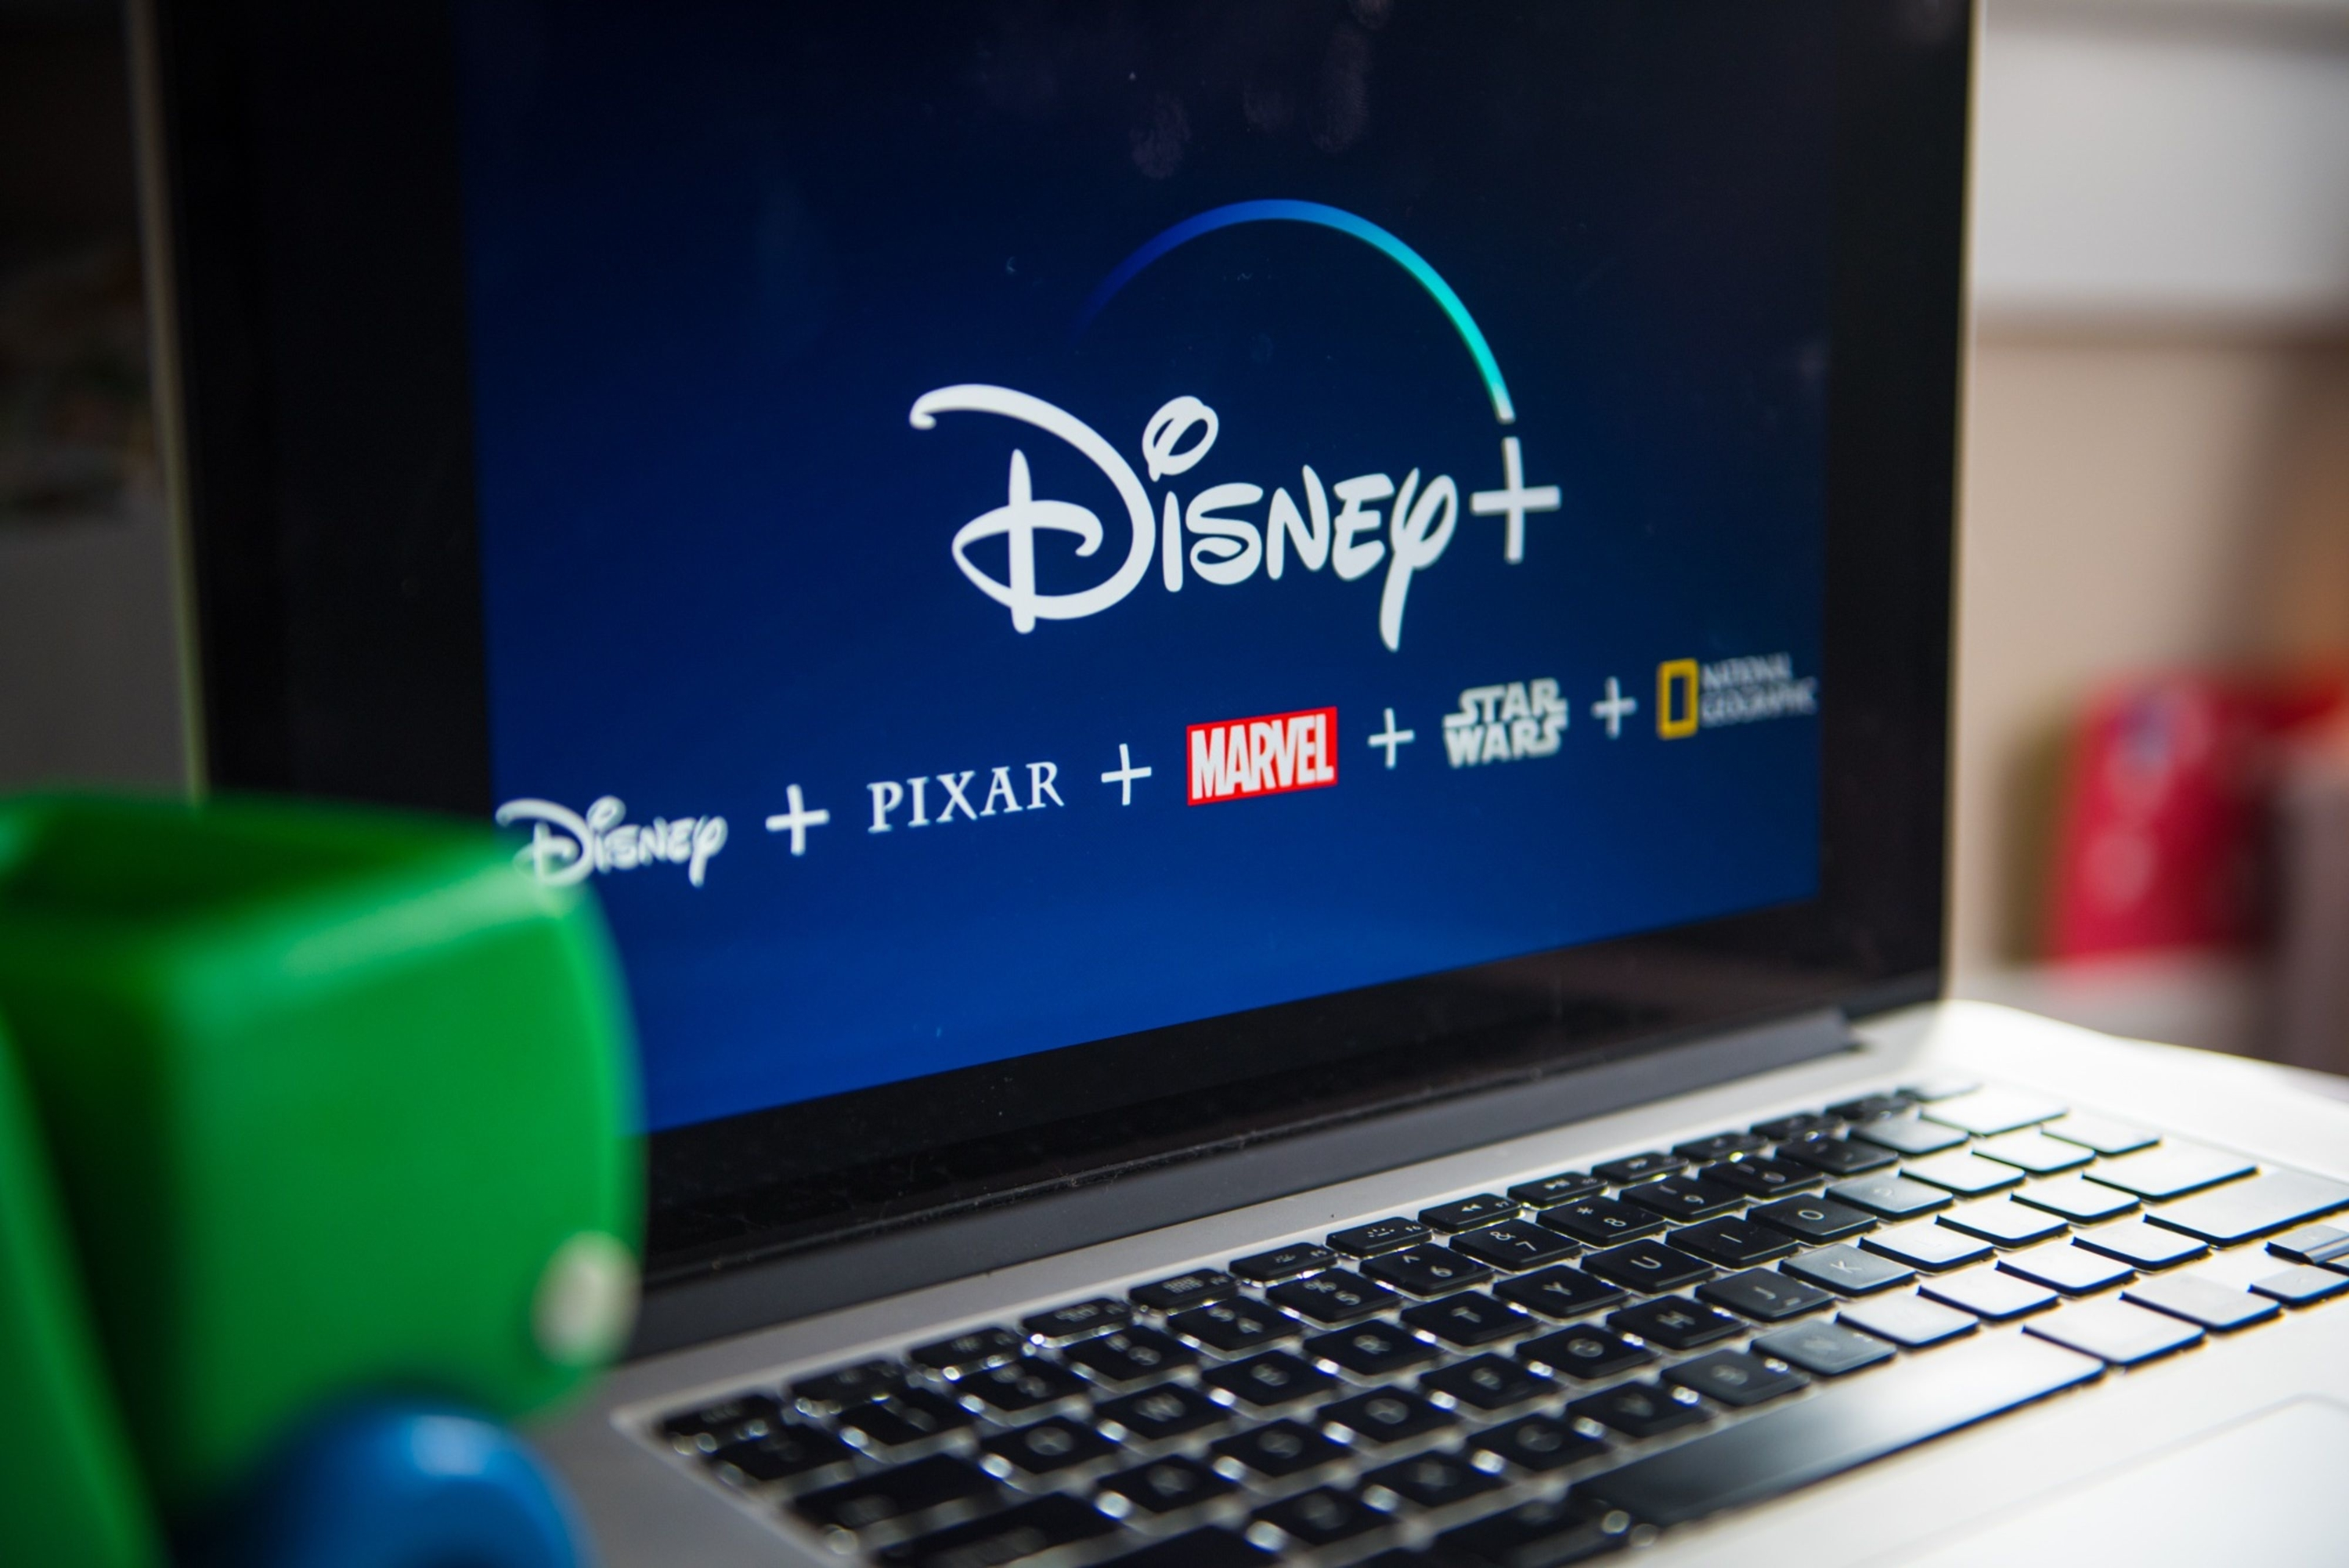 Disney streaming subscriptions fell short in the second quarter